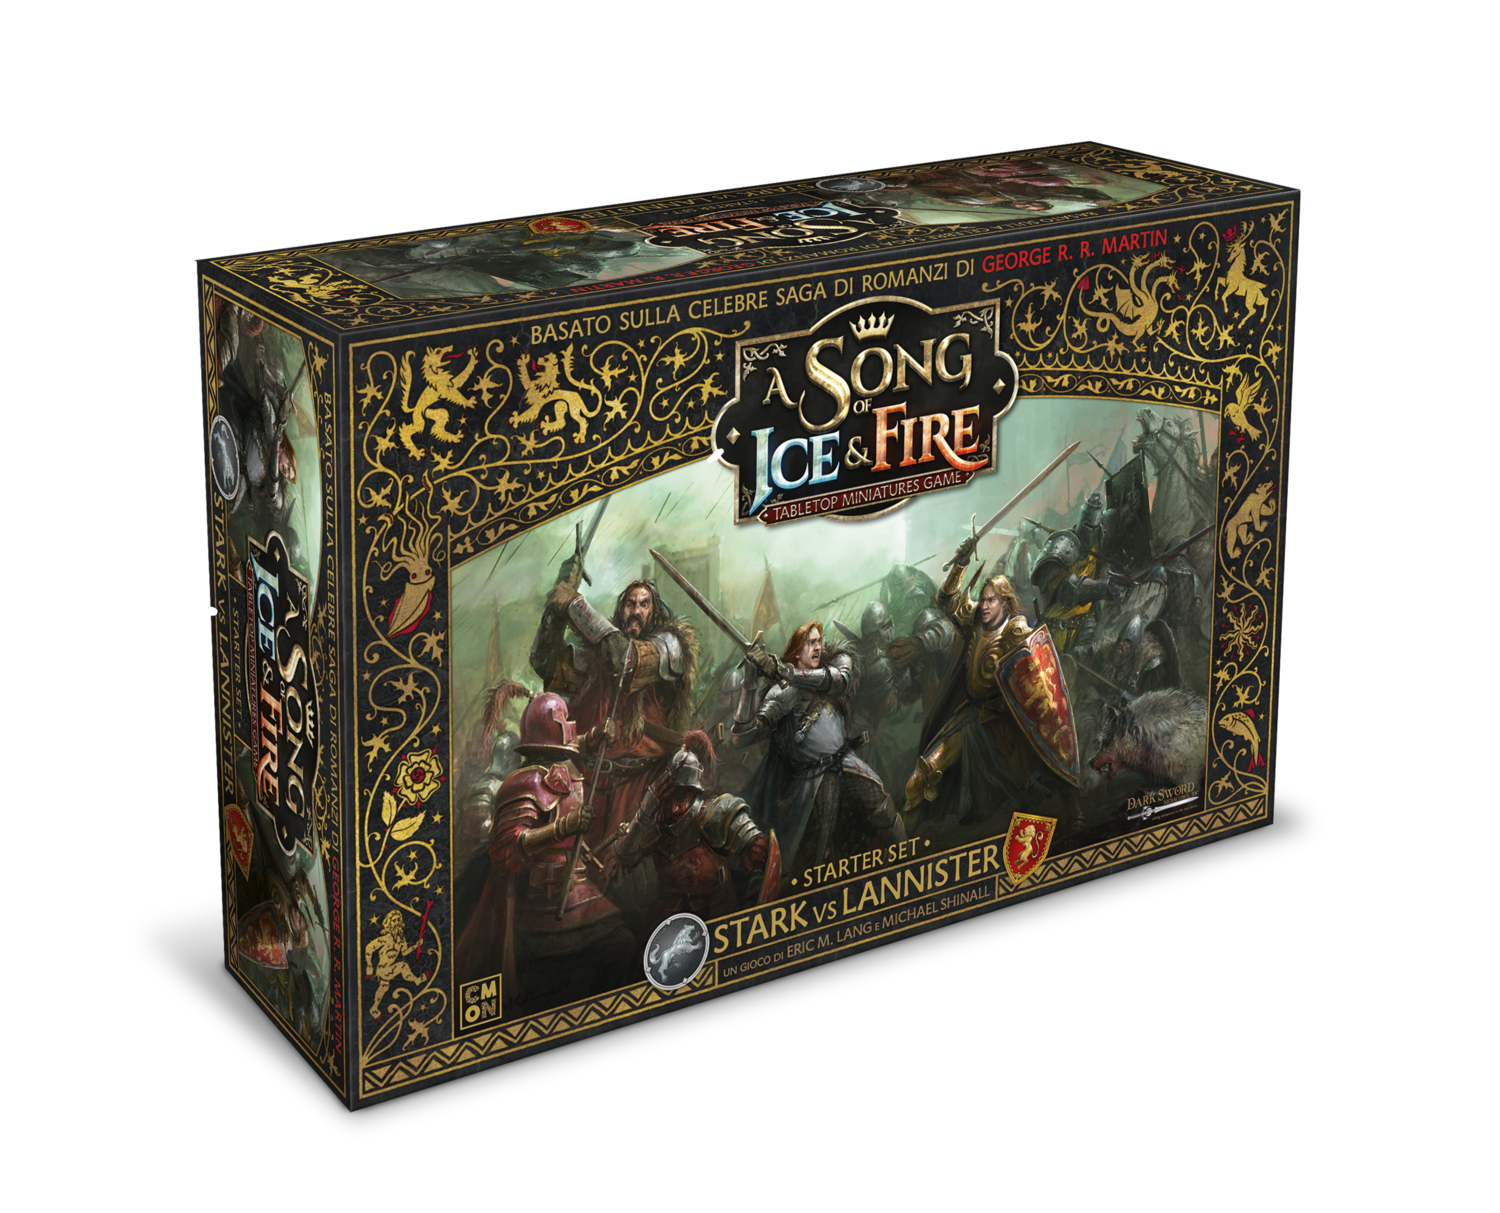 A Song of Ice and Fire Miniature Game